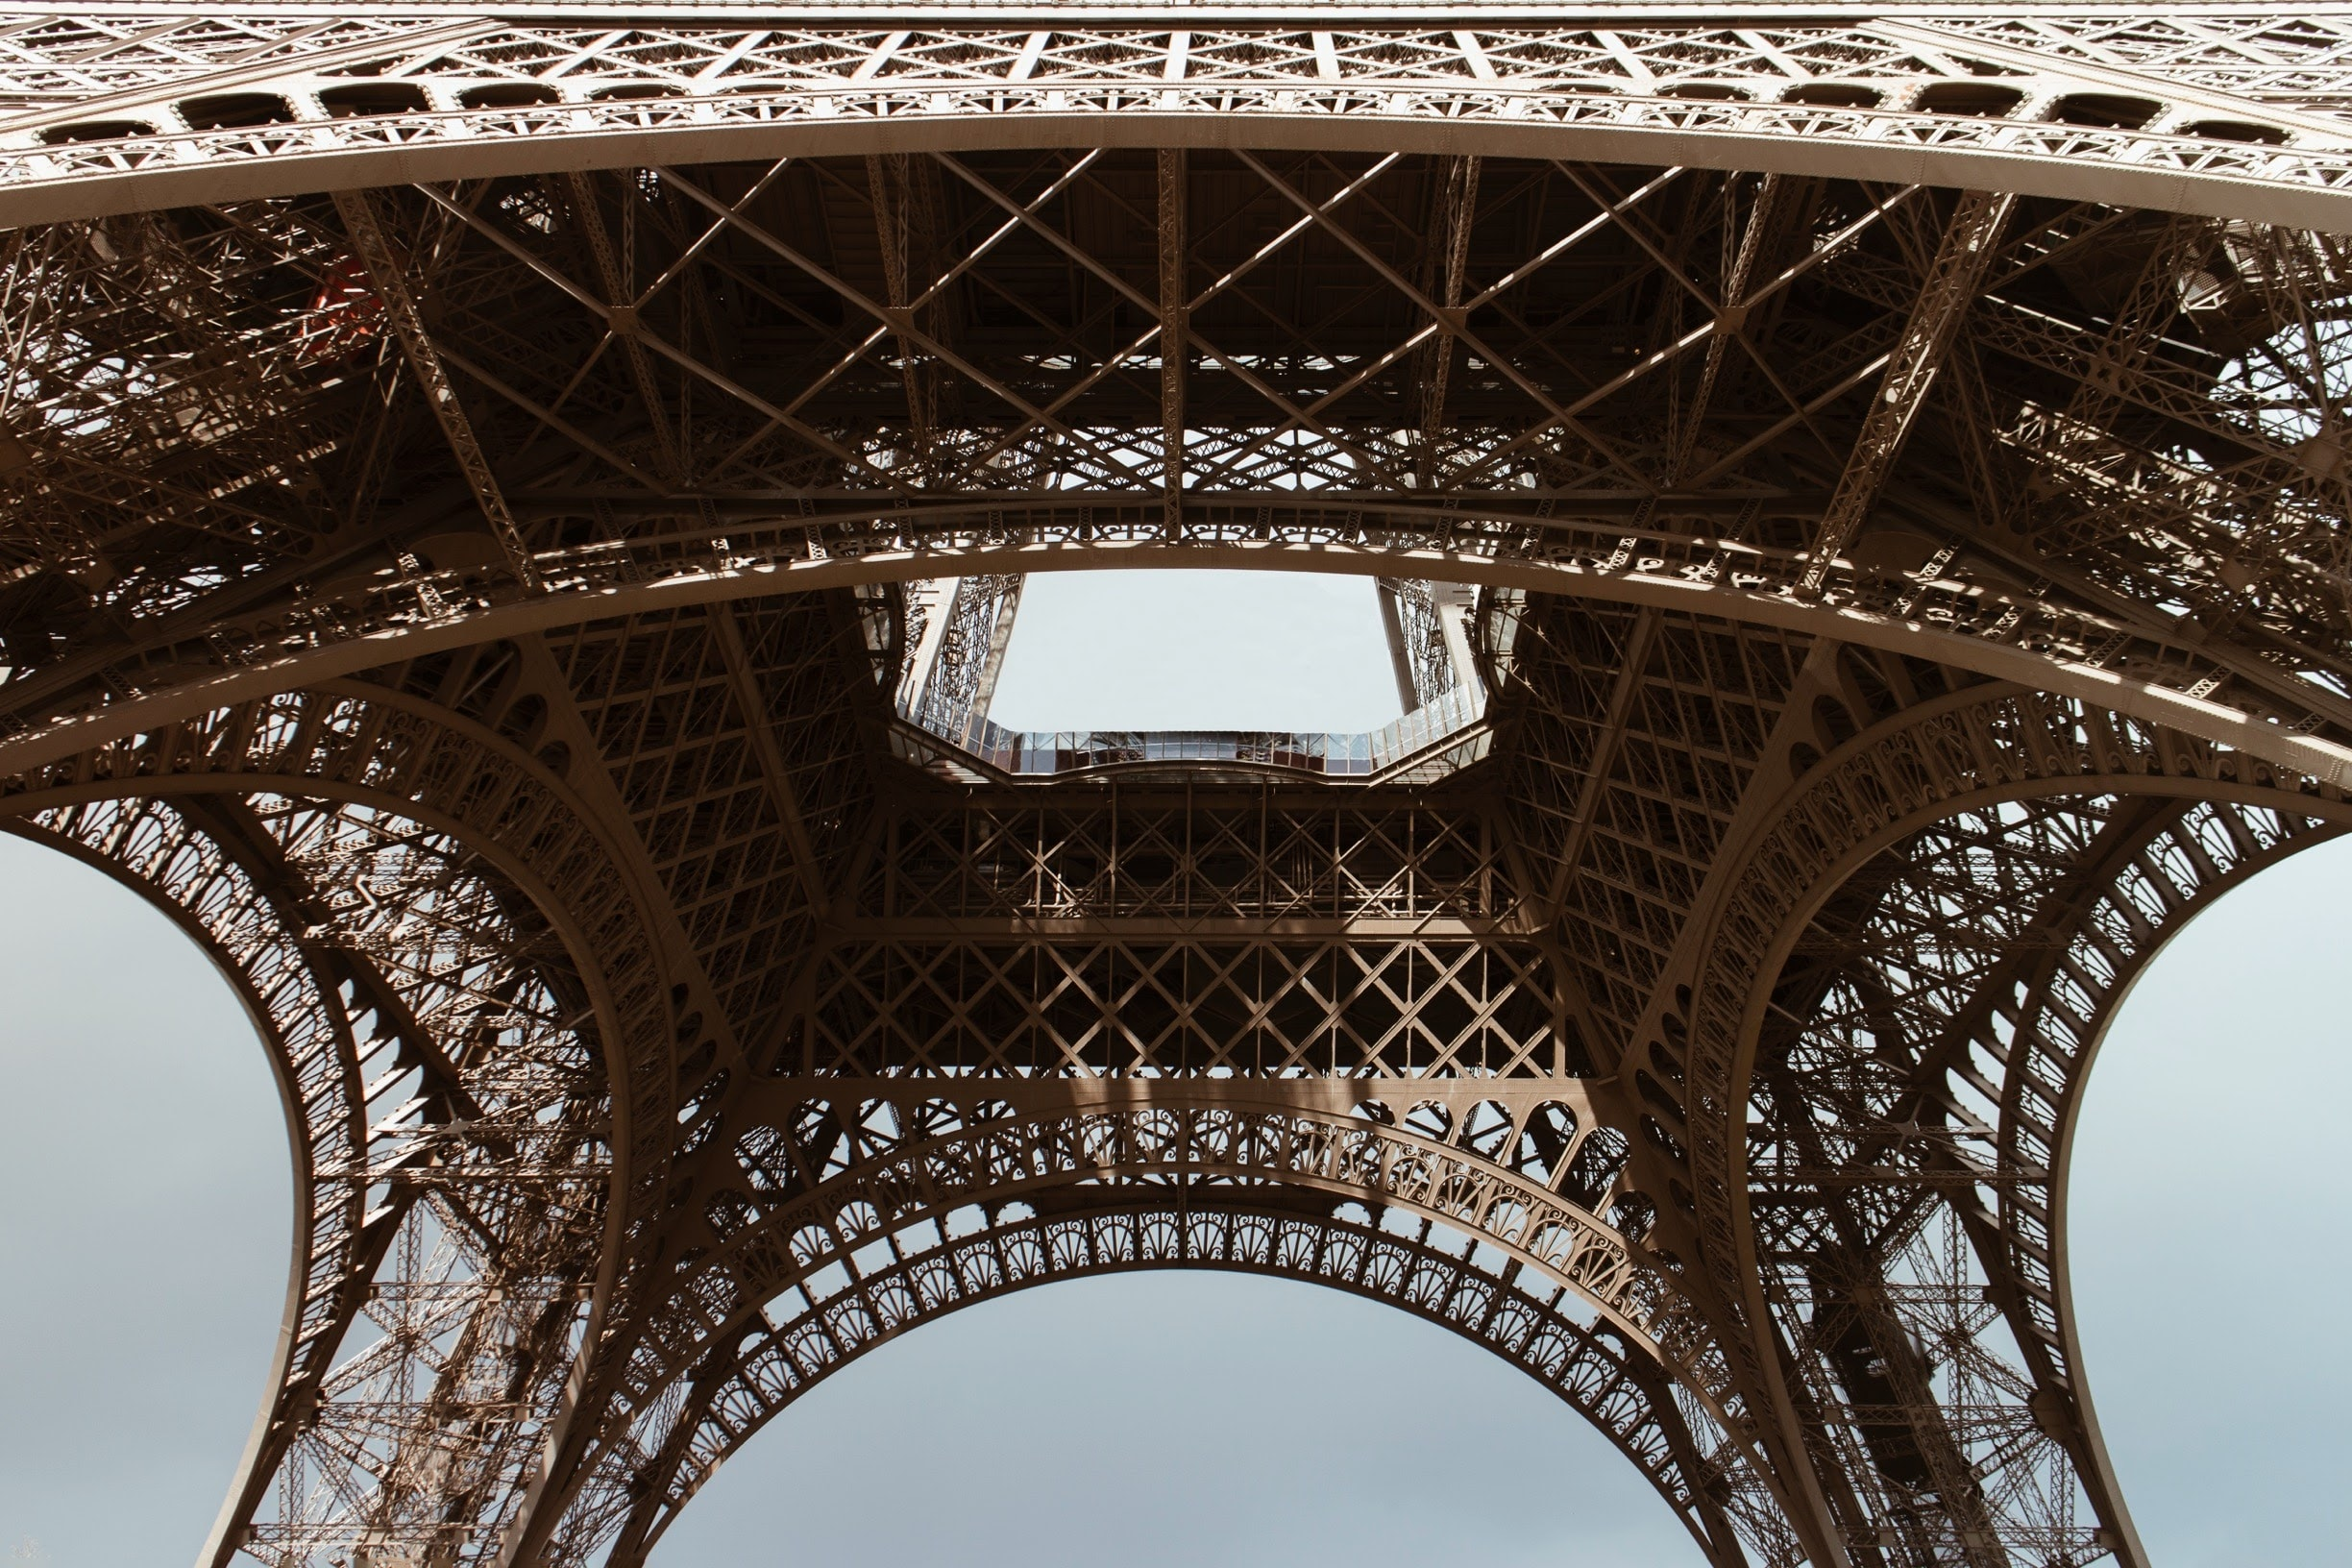 Looking up at the Eiffel Tower from underneath it